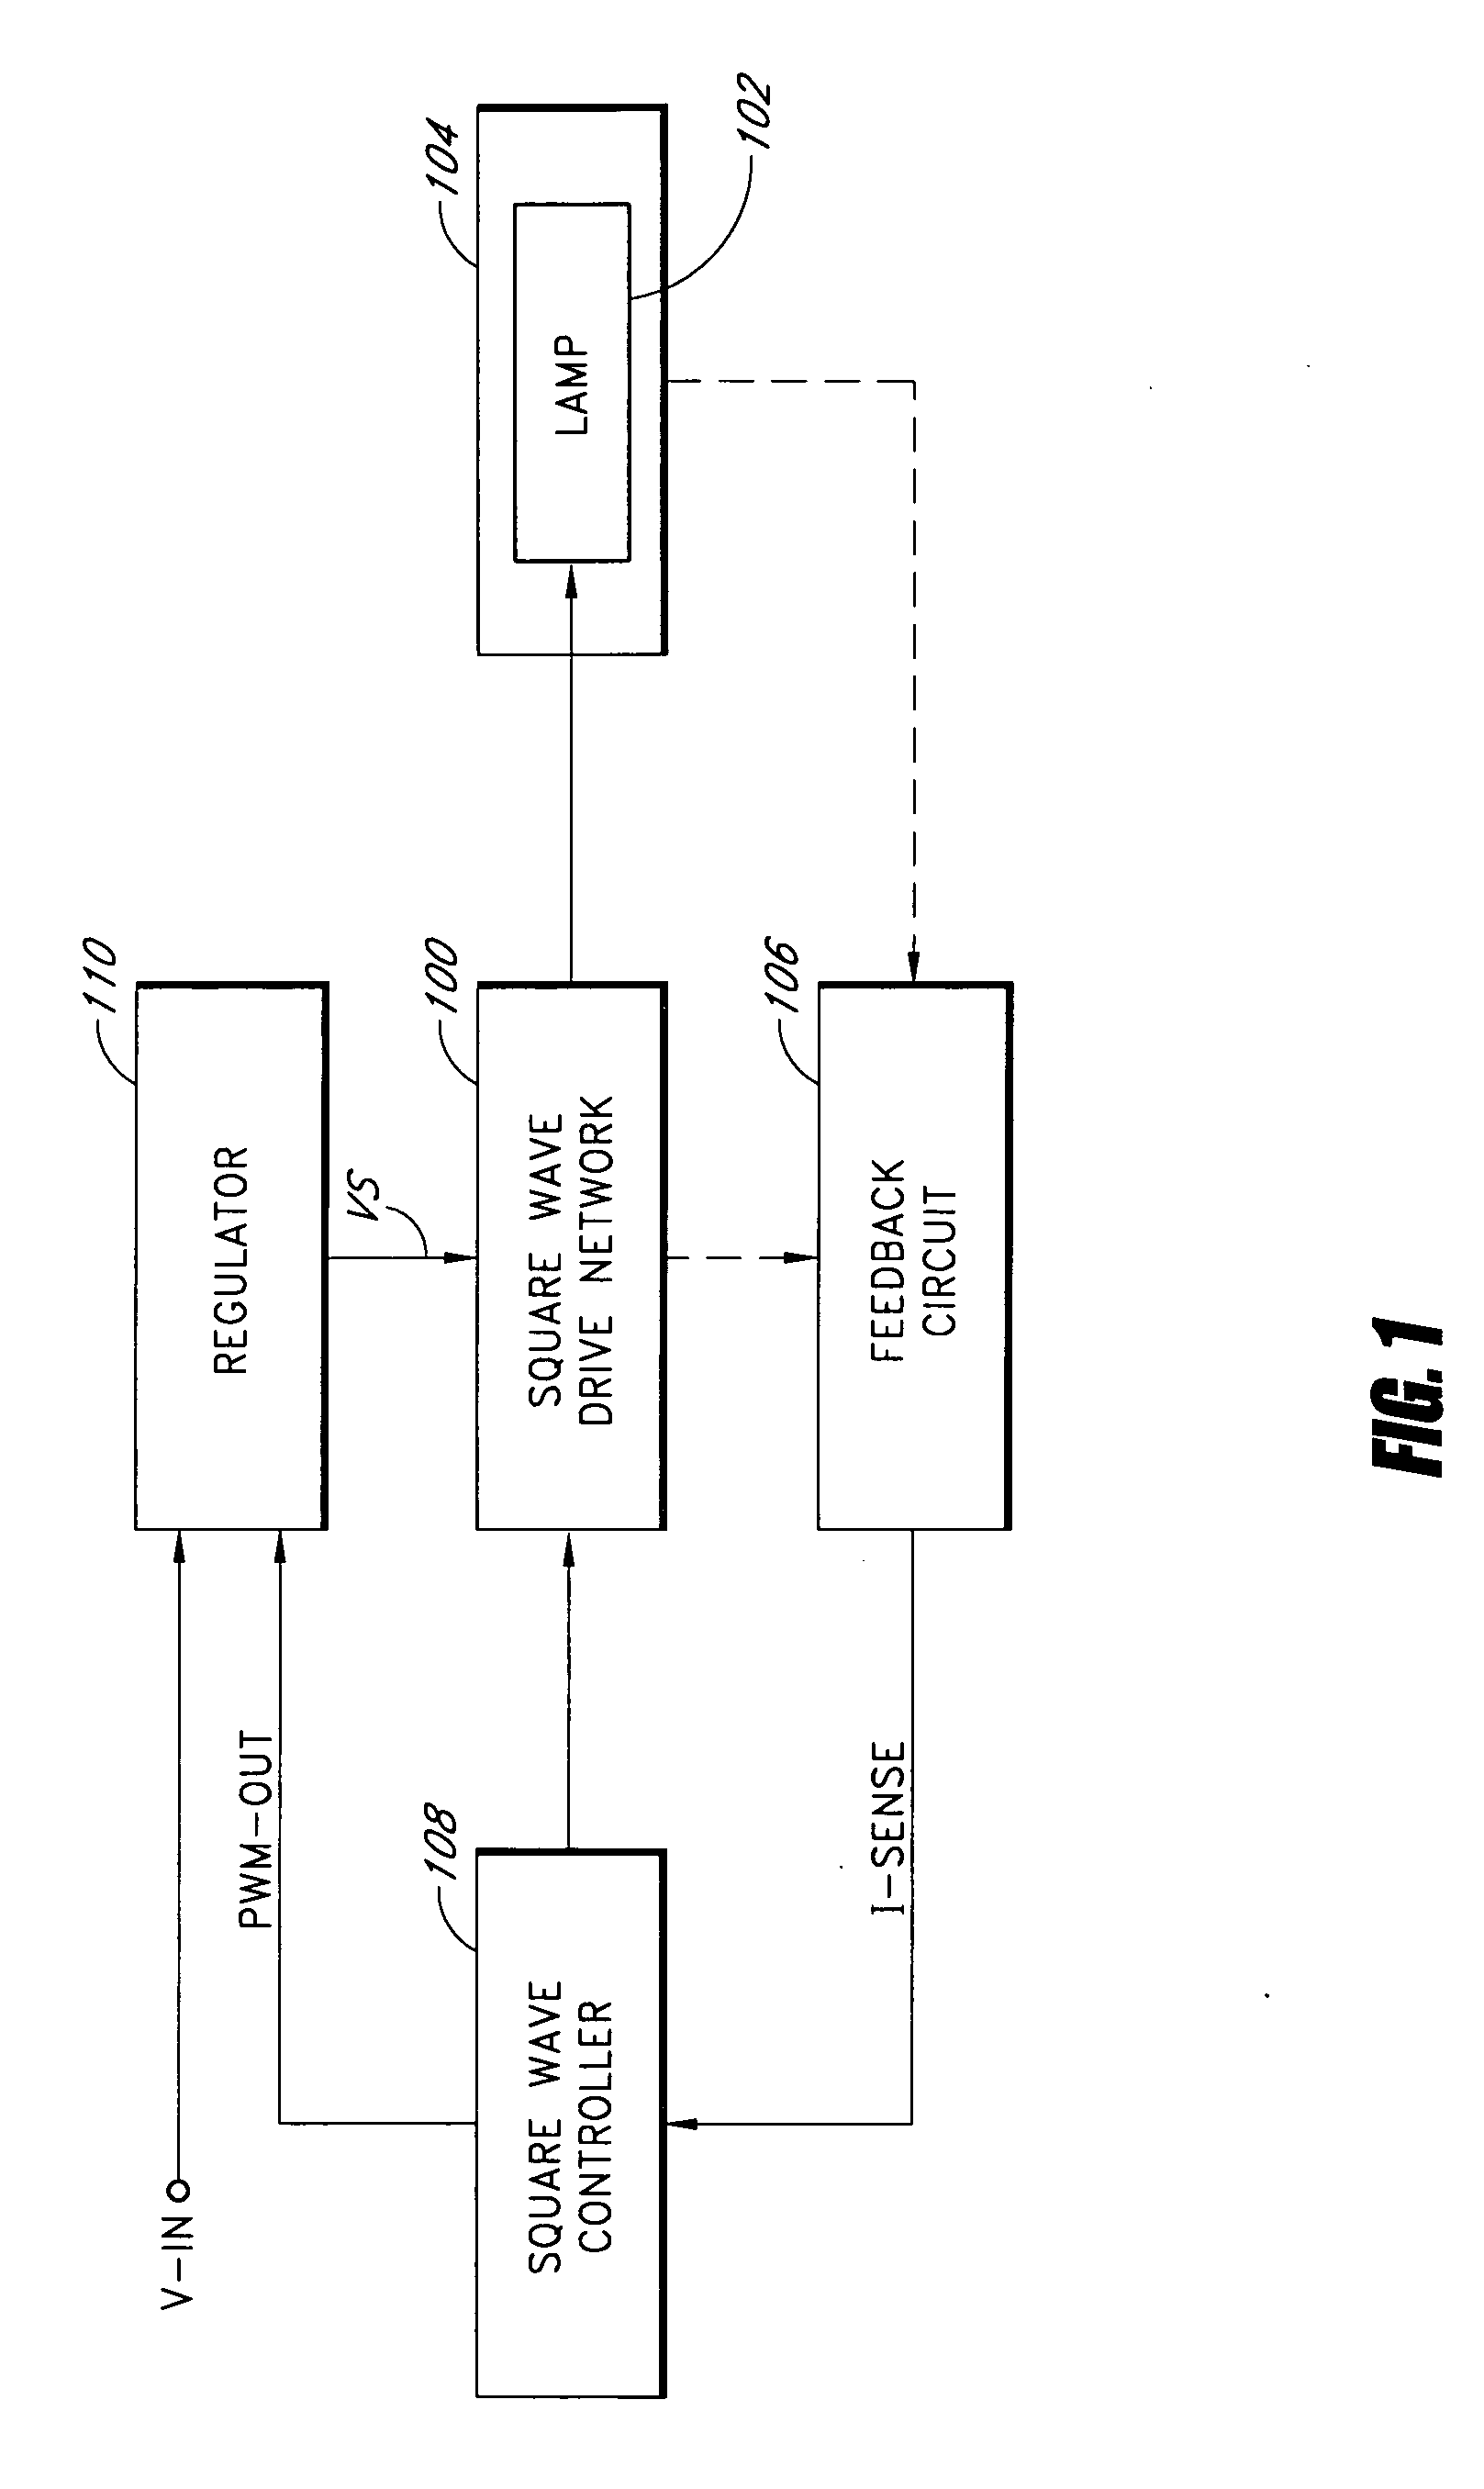 patent us20060022612 - square wave drive system